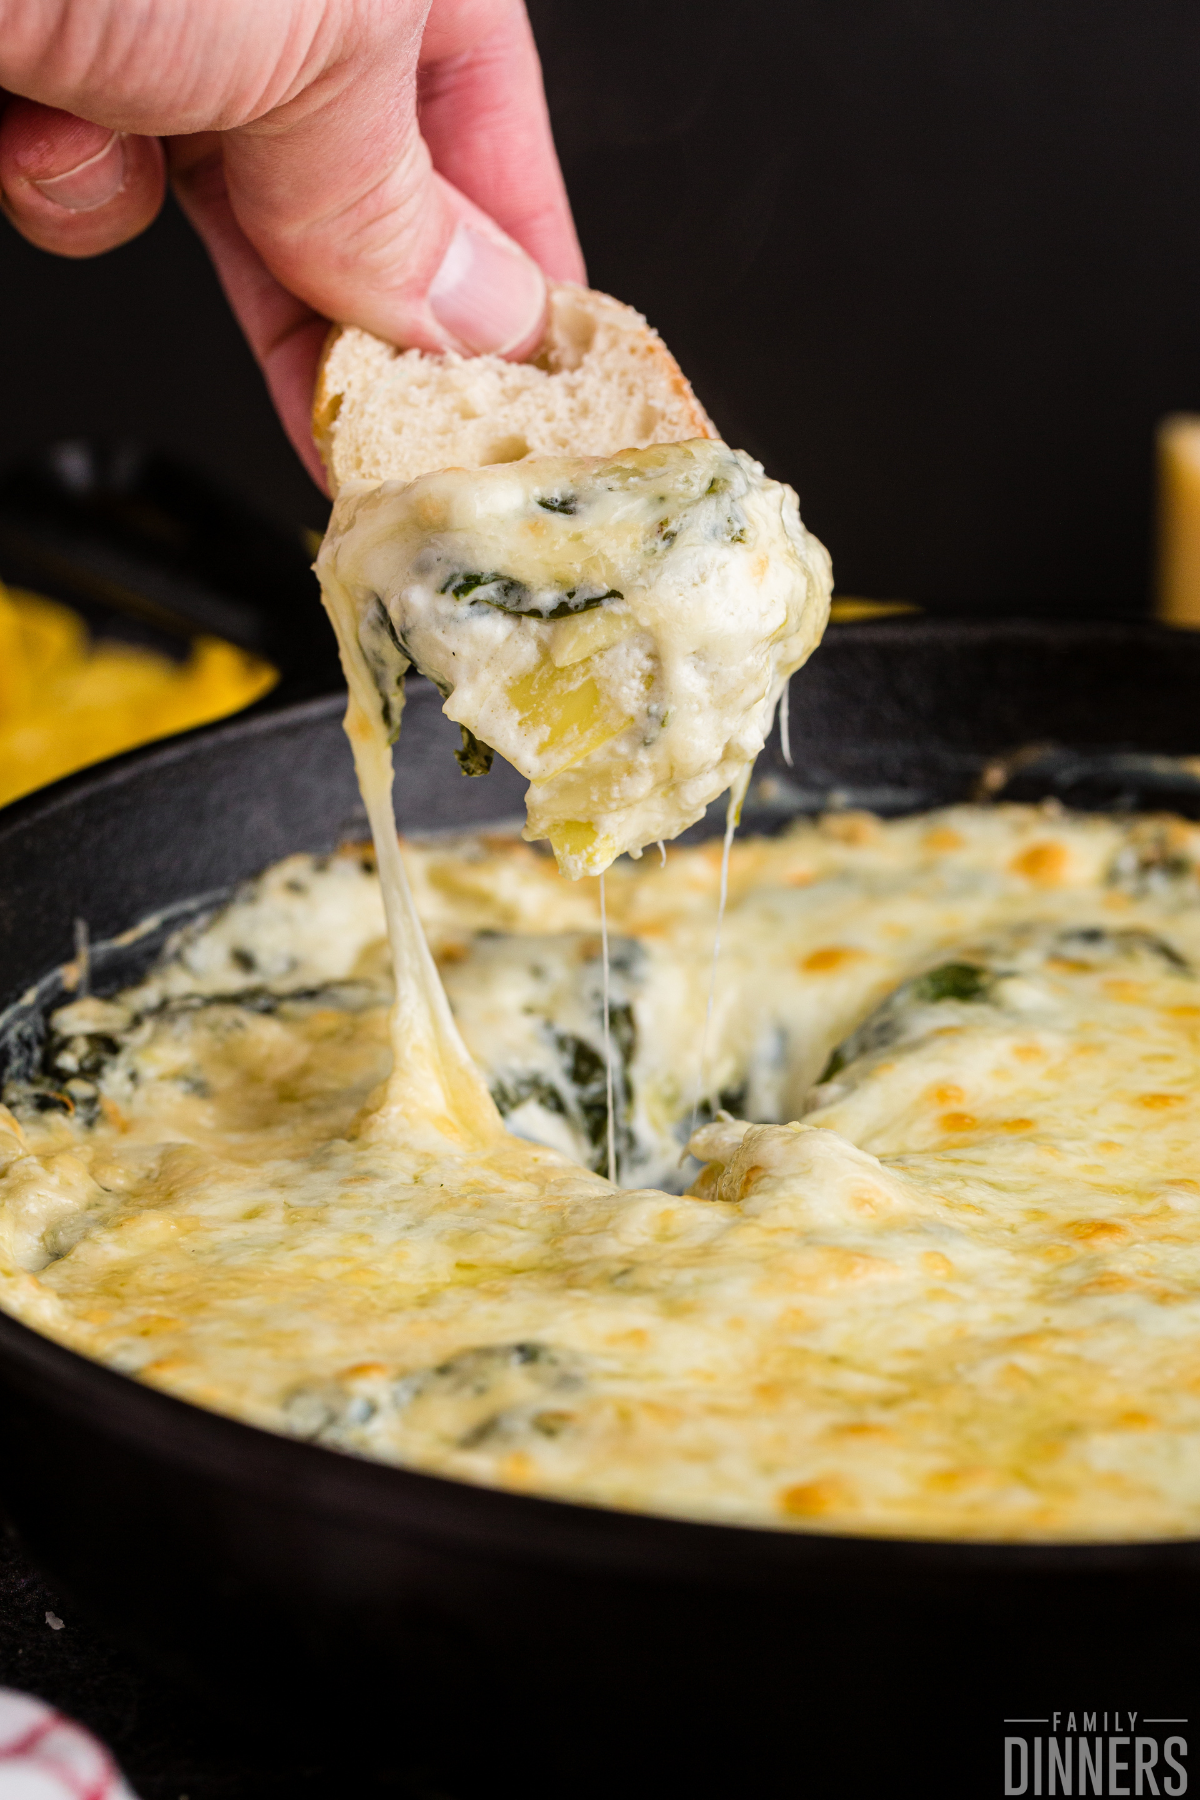 Chip being dipped into gooey spinach and artichoke dip that's very cheesy